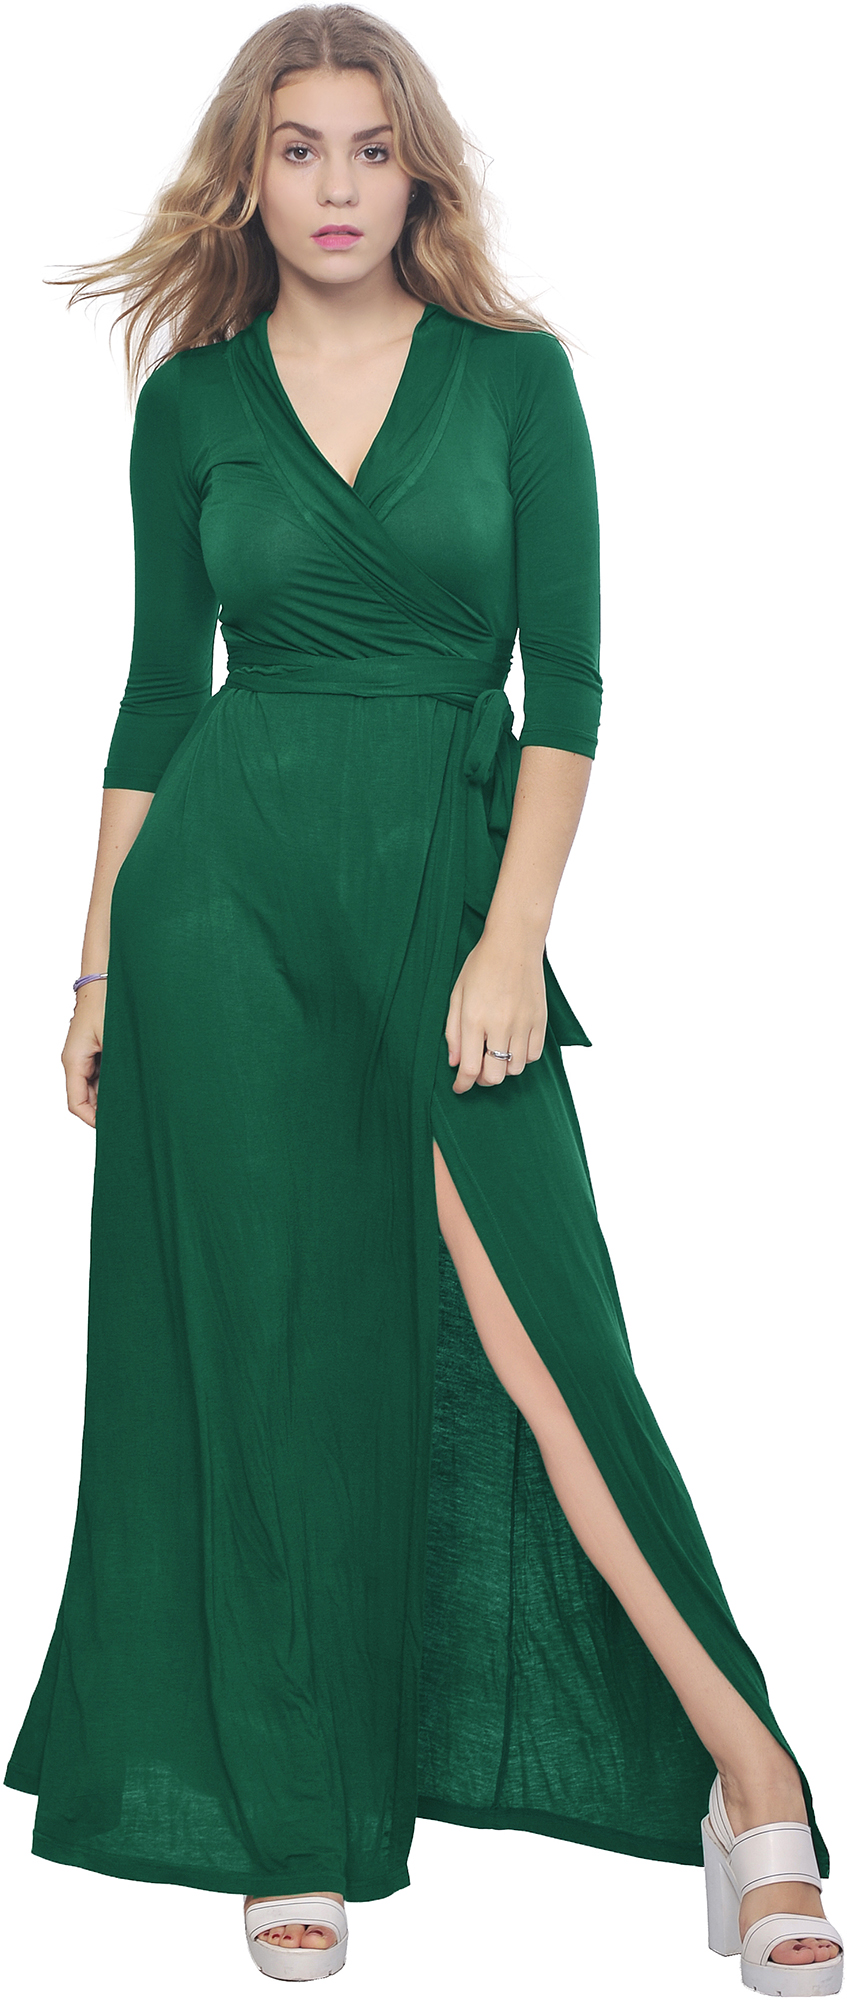 Cool With Sheer Long Sleeves That Nip In At The Wrist, And A Demure Button Closure In The Back, This Pretty Poly Dress Can Be Machine Washed For Easy Summer Wear It Comes In Sizes From 0X Plus To 3X Plus